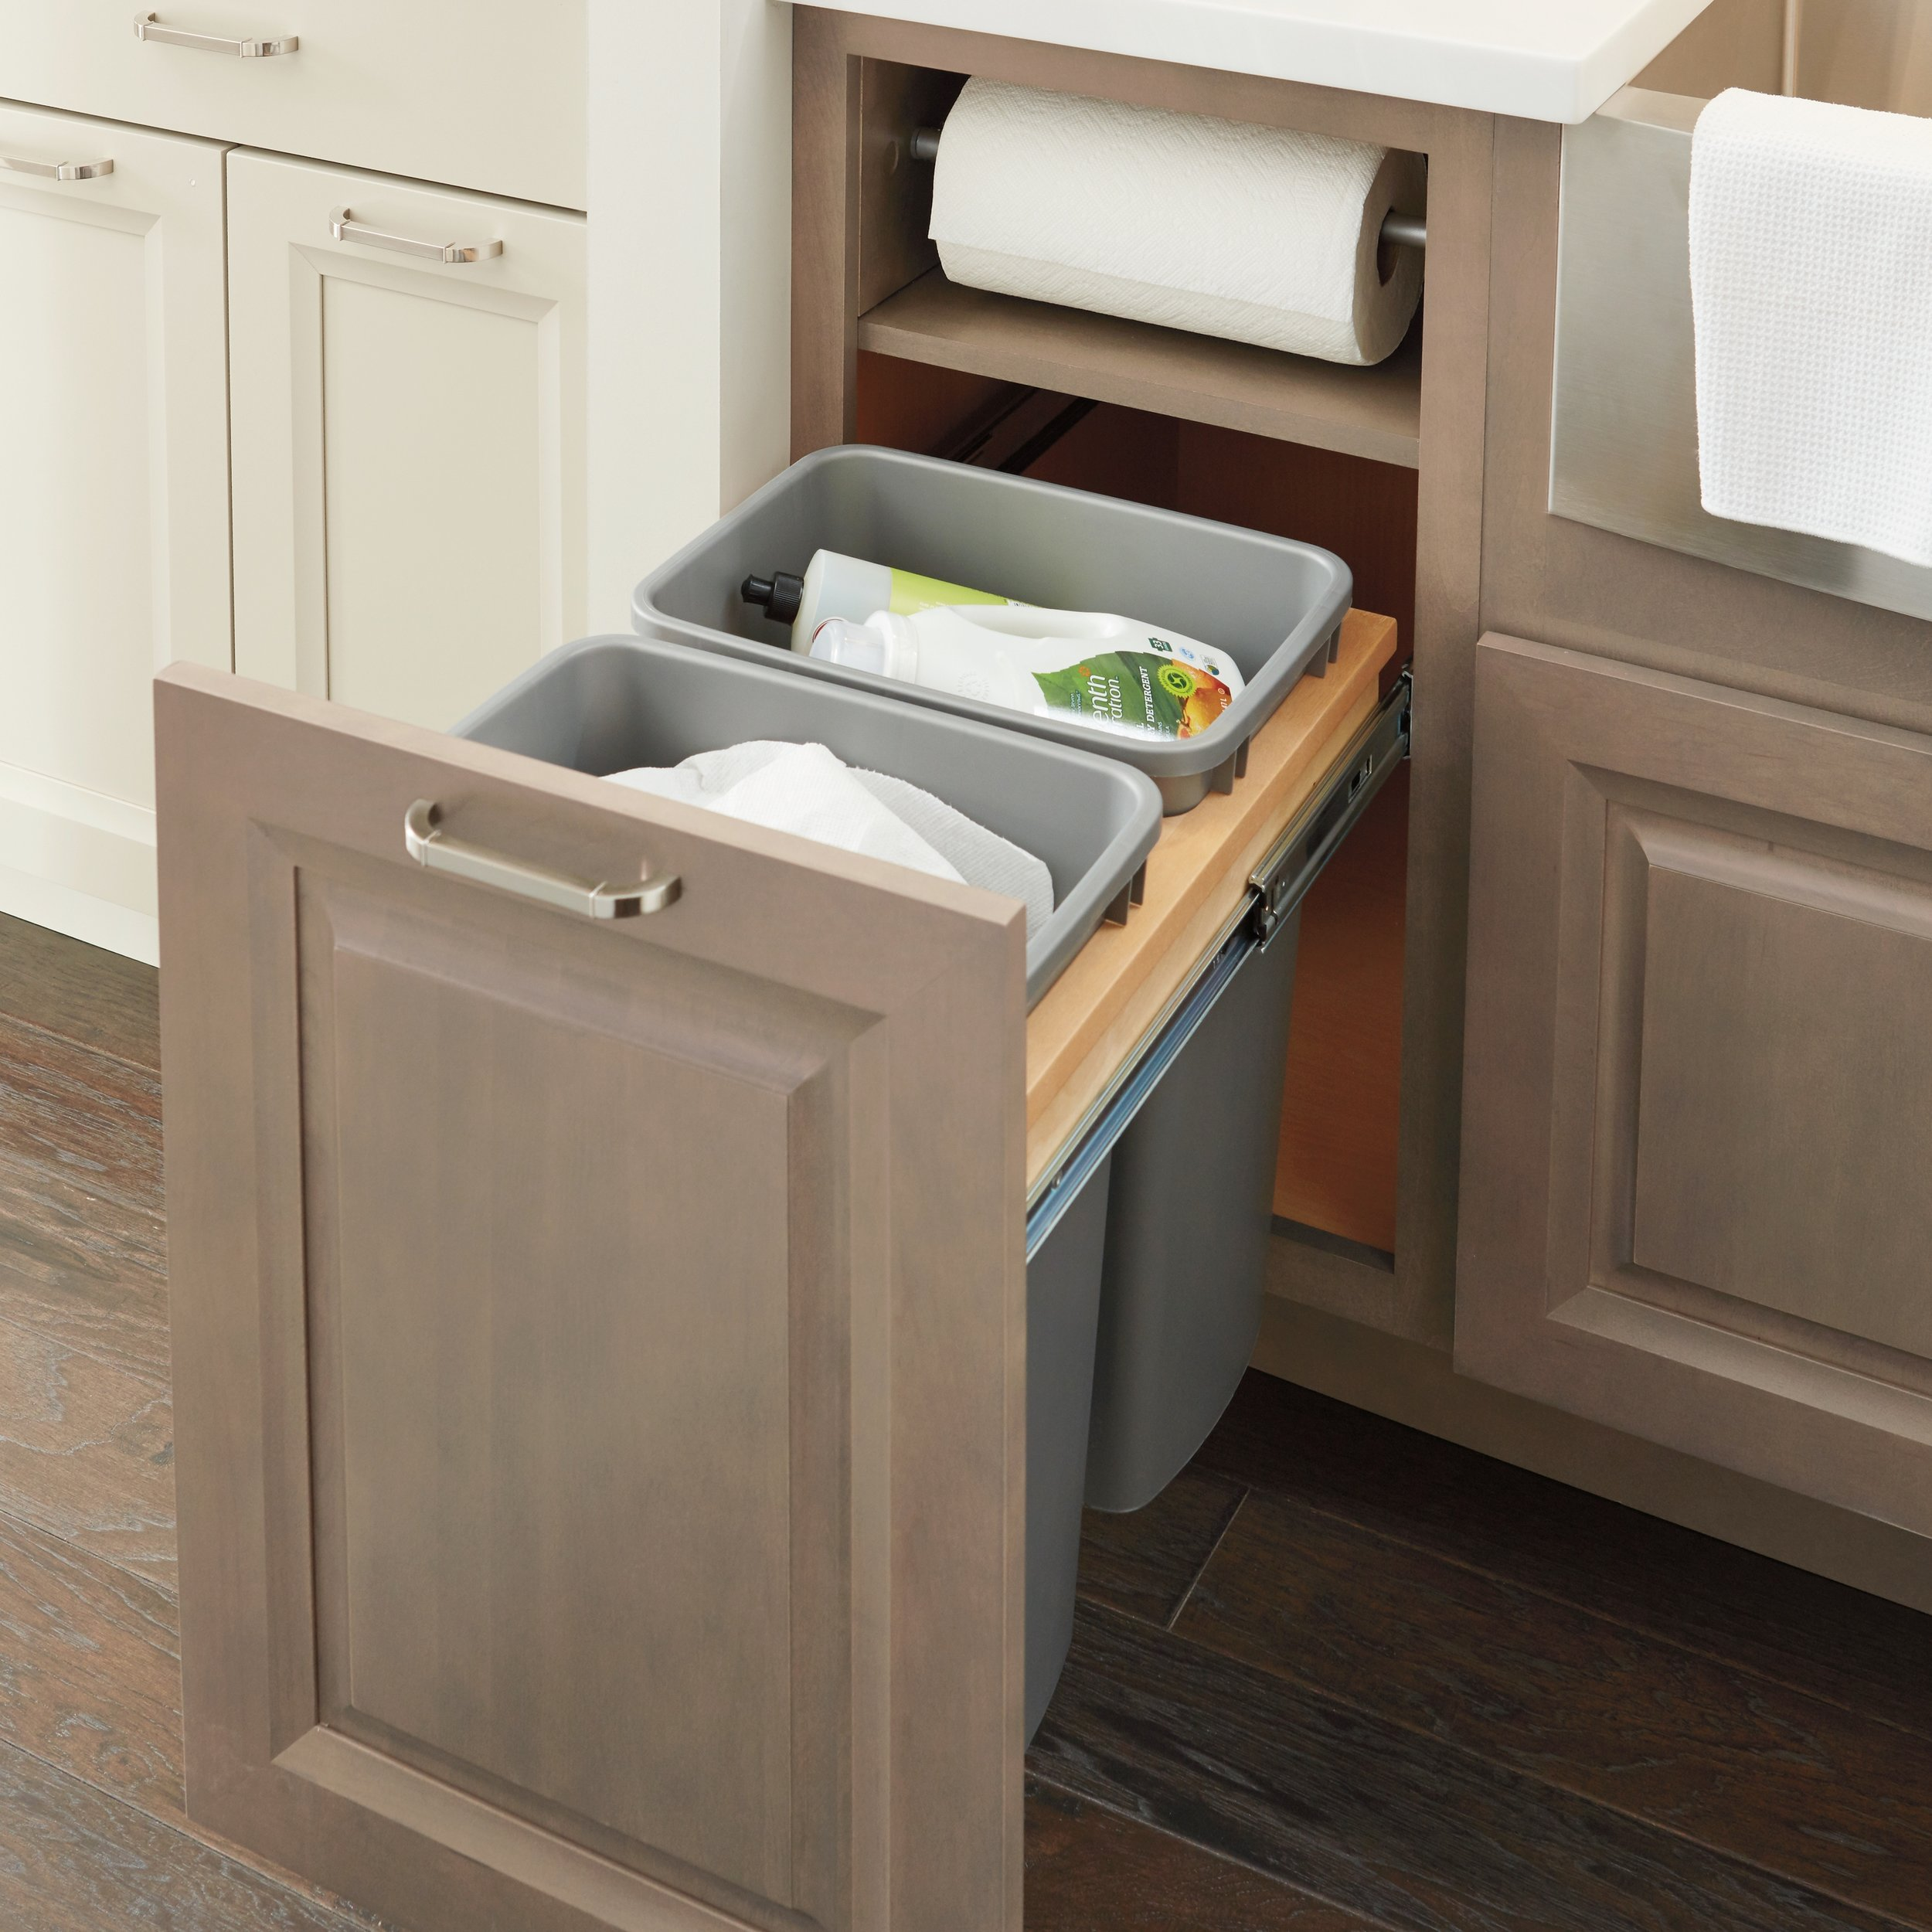 Double Trash Pullout with Paper Towel Storage  Source -  Masterbrand Cabinetry